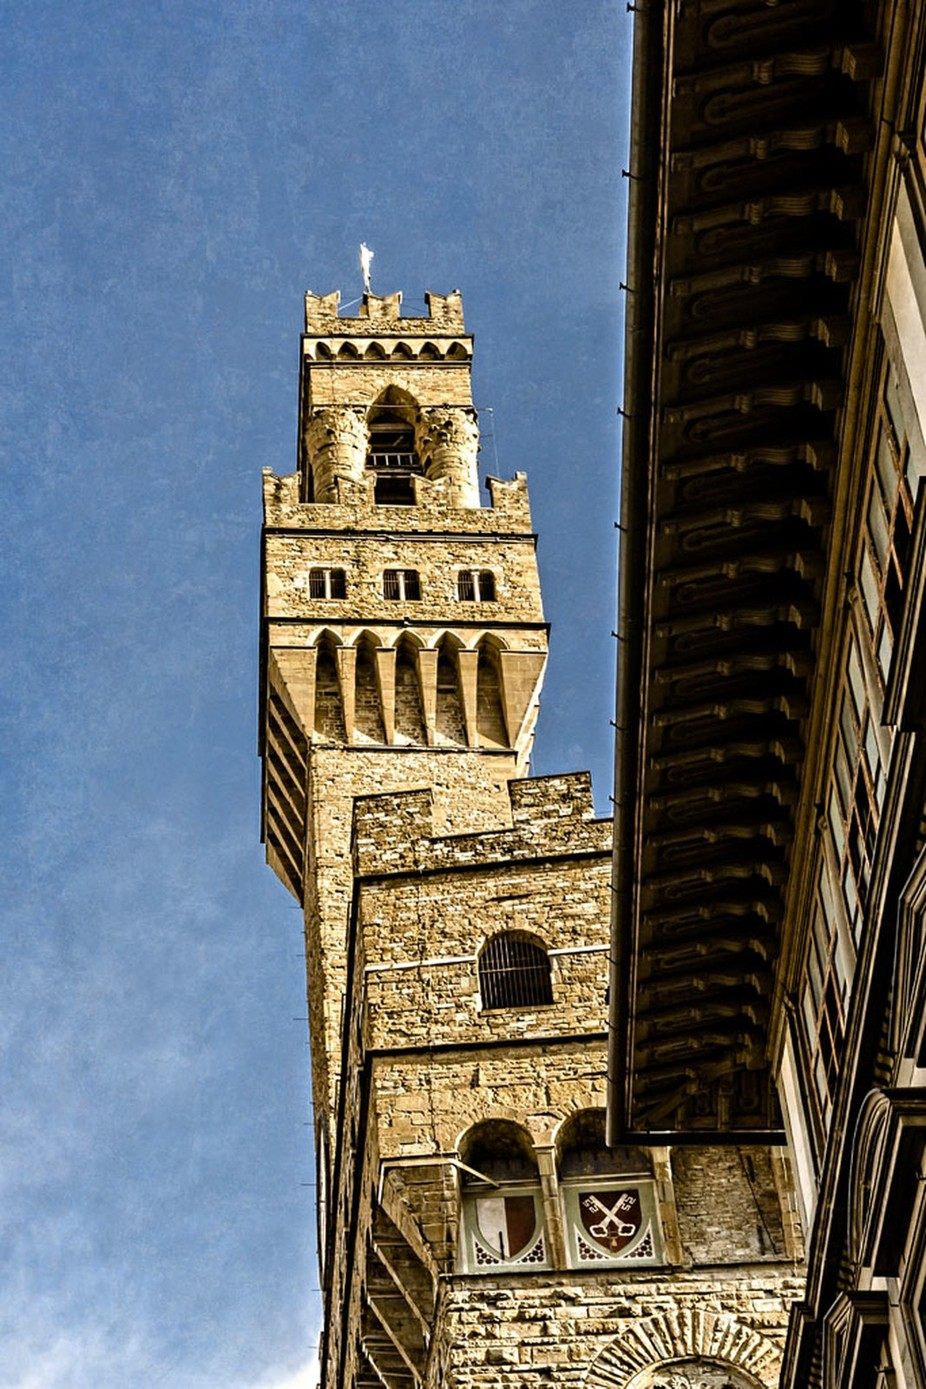 The Tower of the Palazzo Vecchio, in Florence, Italy